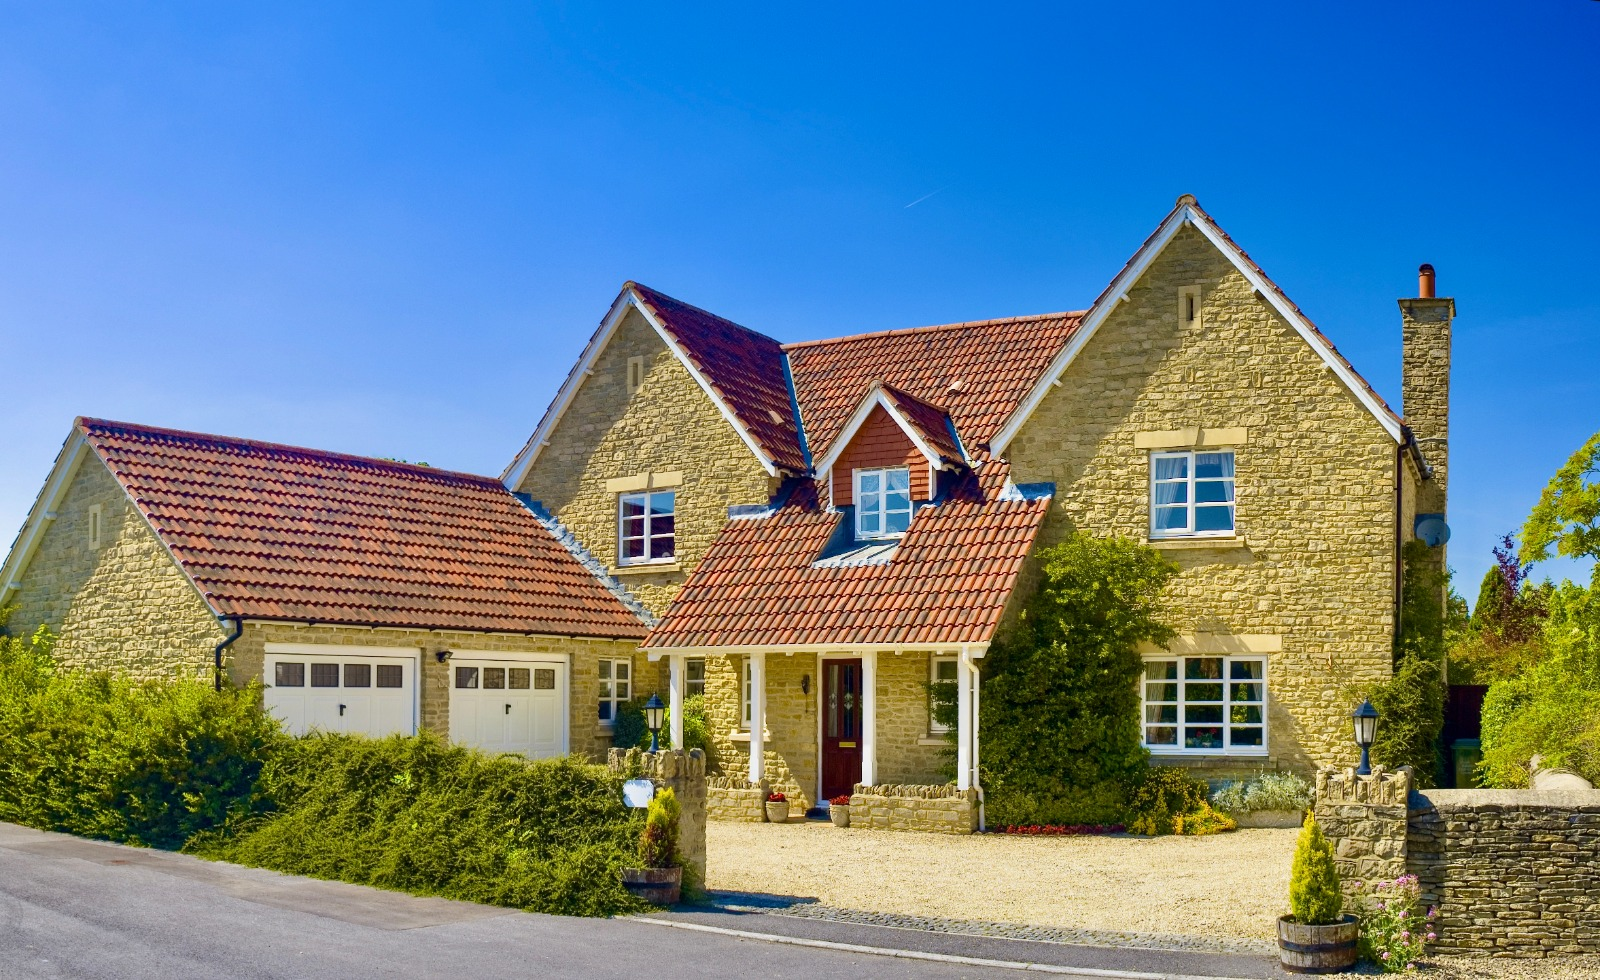 UK house prices are rising too high regardless of the crisis in COVID